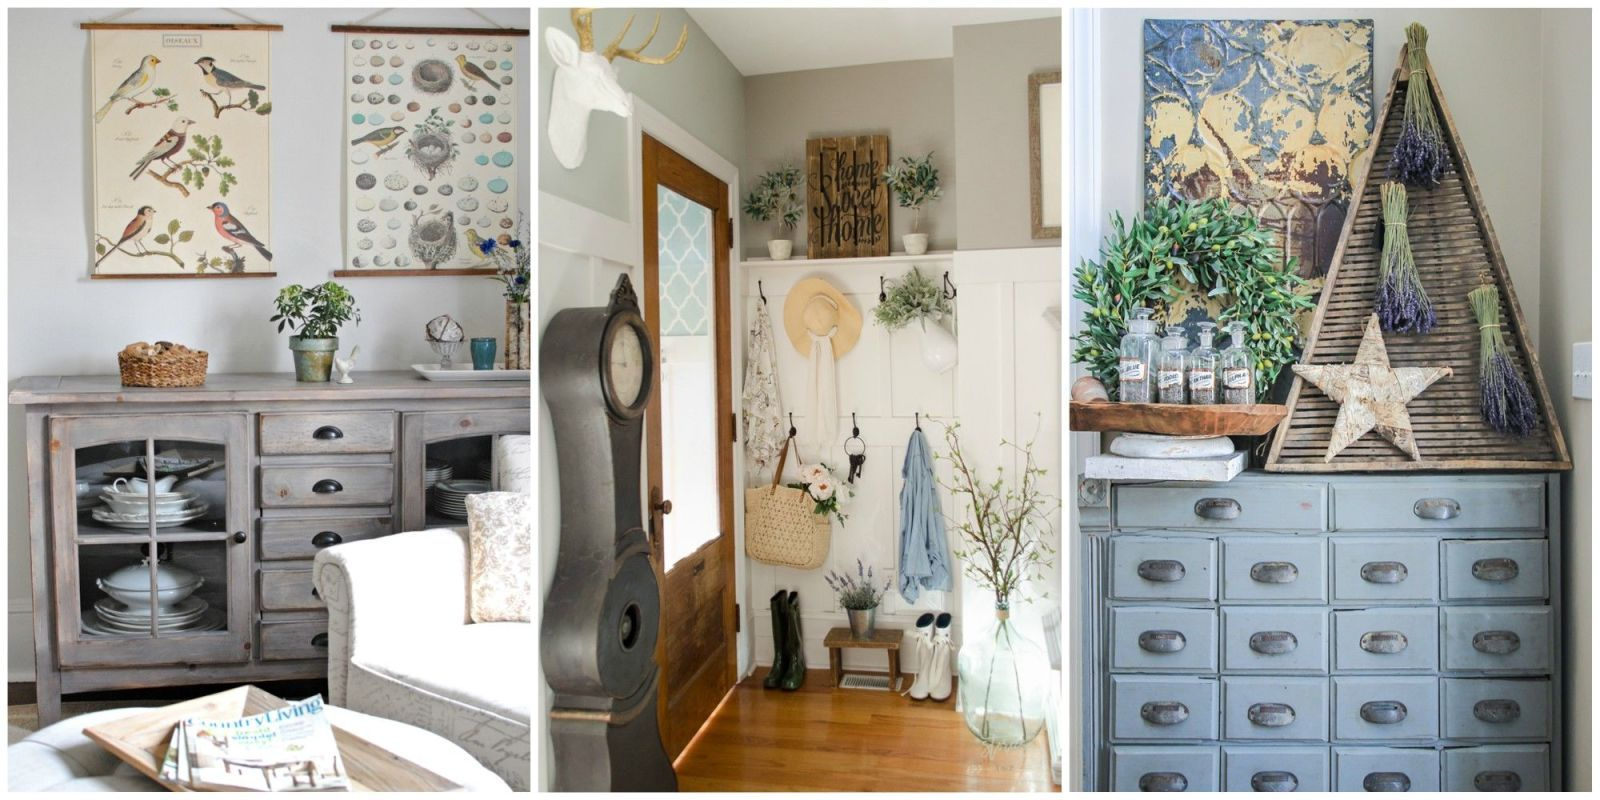 Merveilleux Welcome Springtime Into Your Home With These Easy, Fun, And Inspiring Decor  Ideas.